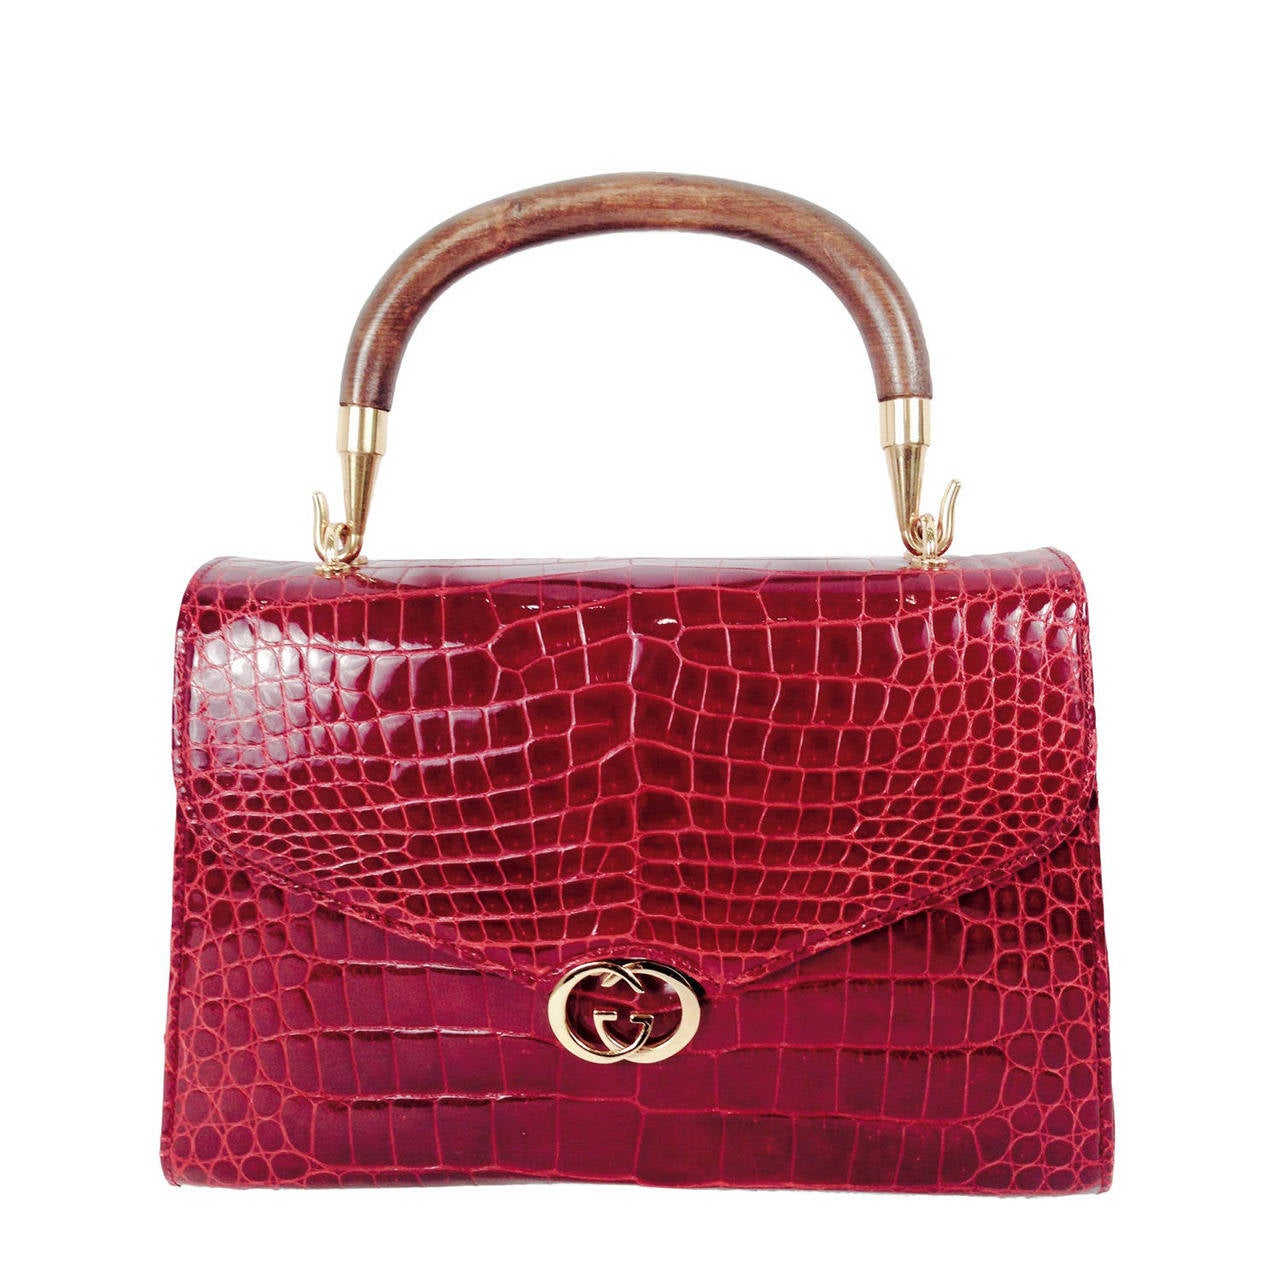 29197e1a07cf Gucci Burgundy Vintage Crocodile Handbag at 1stdibs